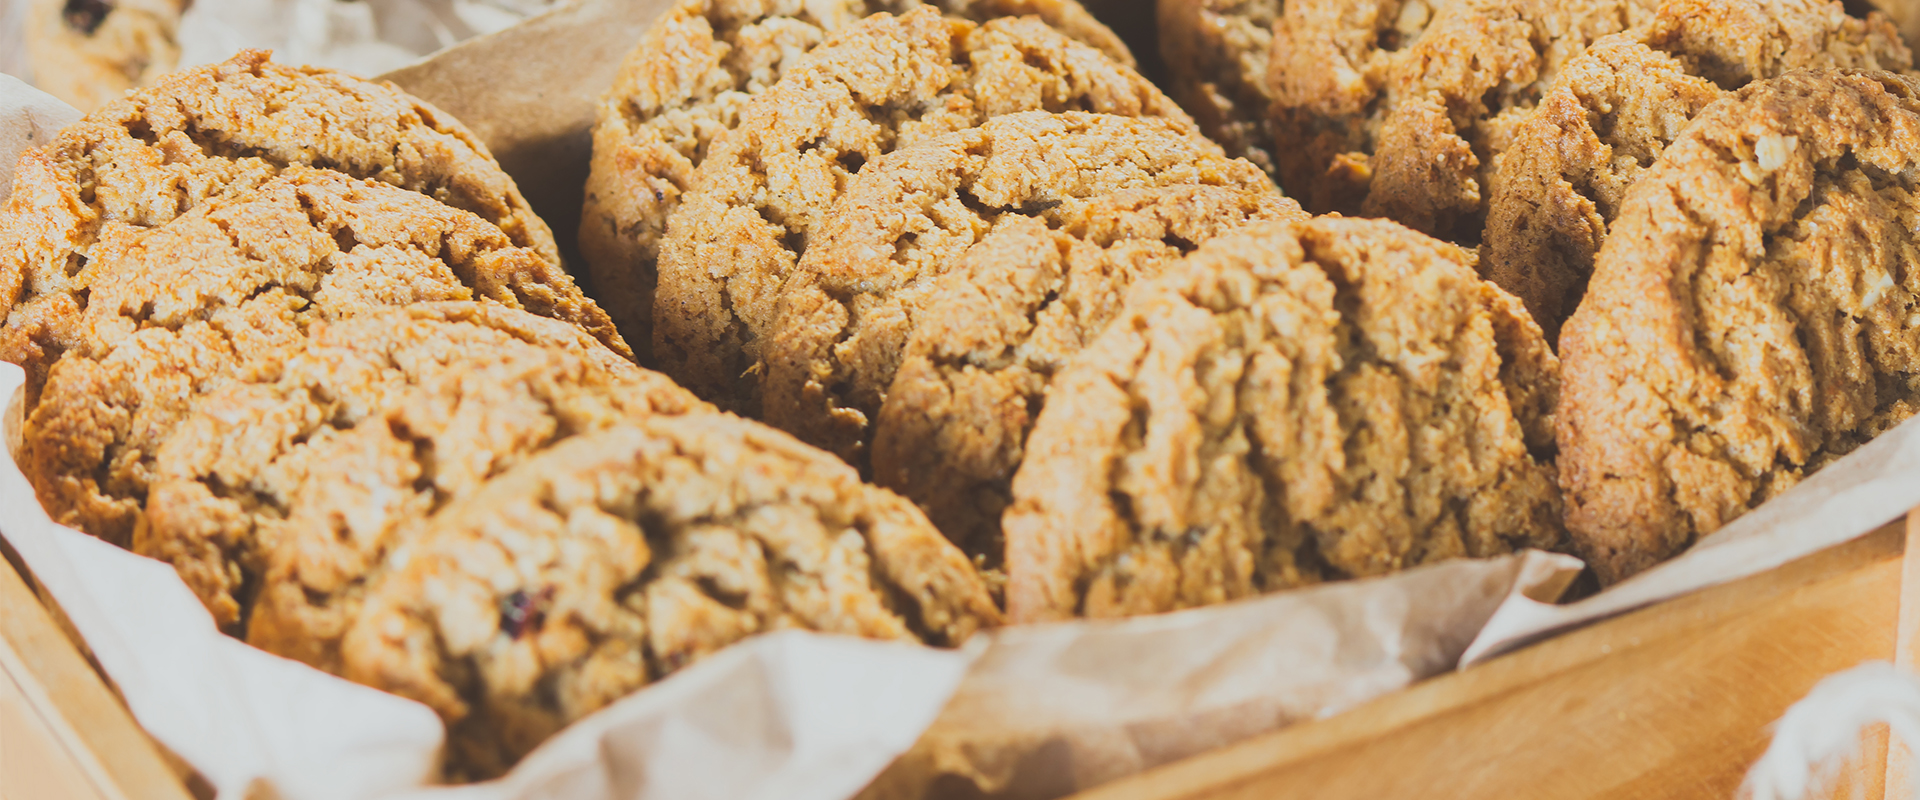 Cookie Policy: Aspire Mobility Group